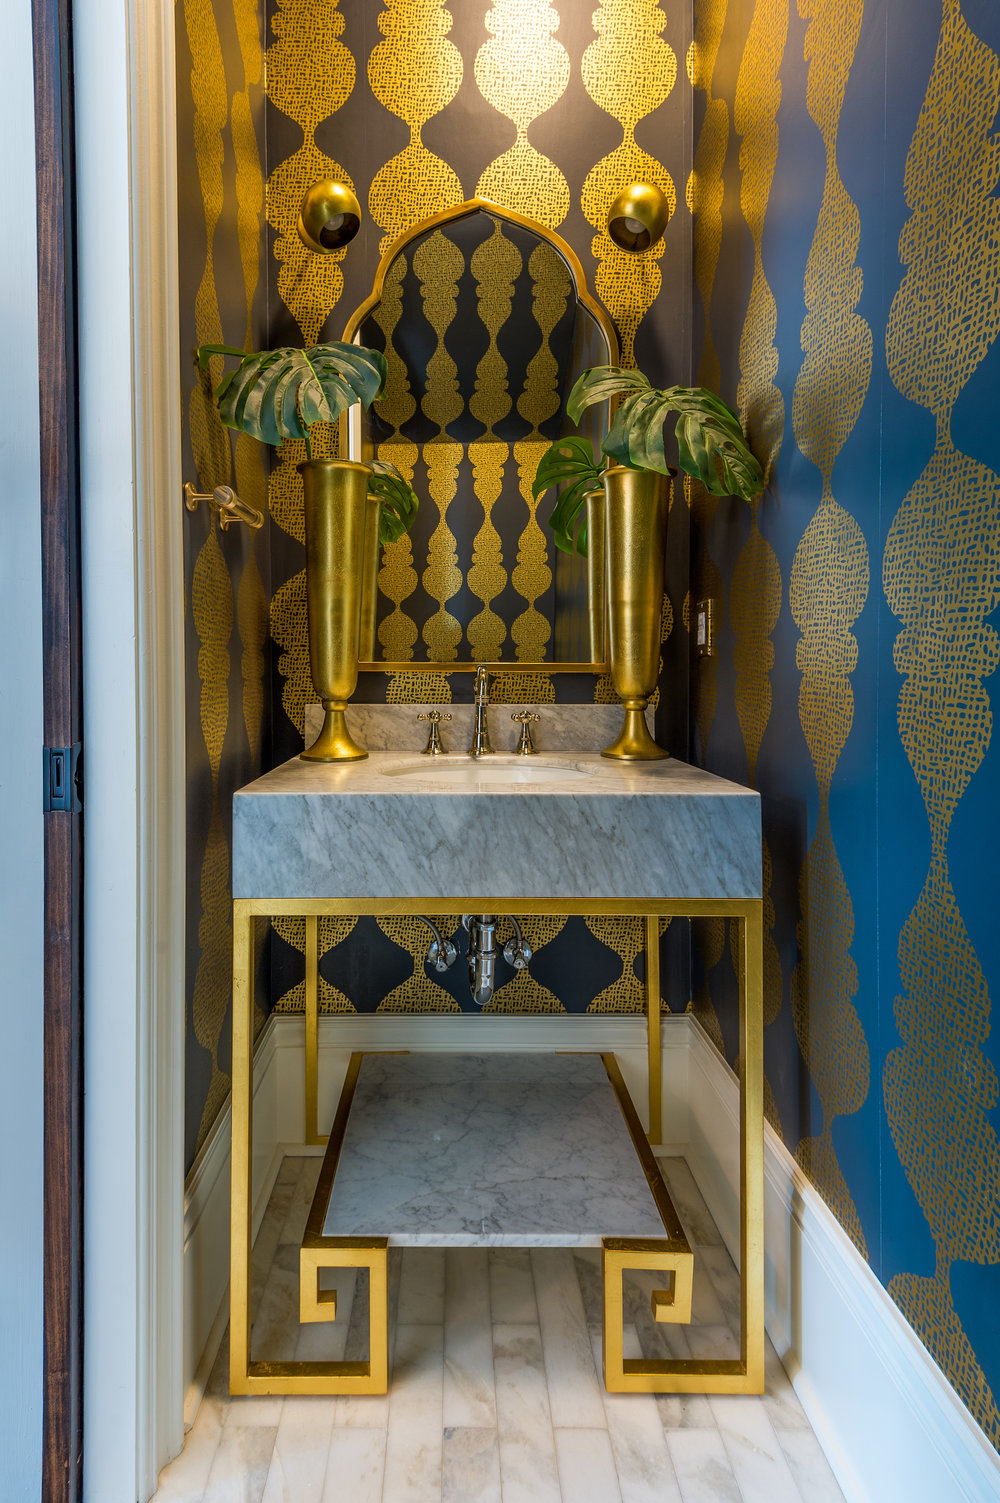 KHB Interiors powder room interior design new orleans old metairie interior decorator new furniture in new orleans furniture placement new orleans .jpg